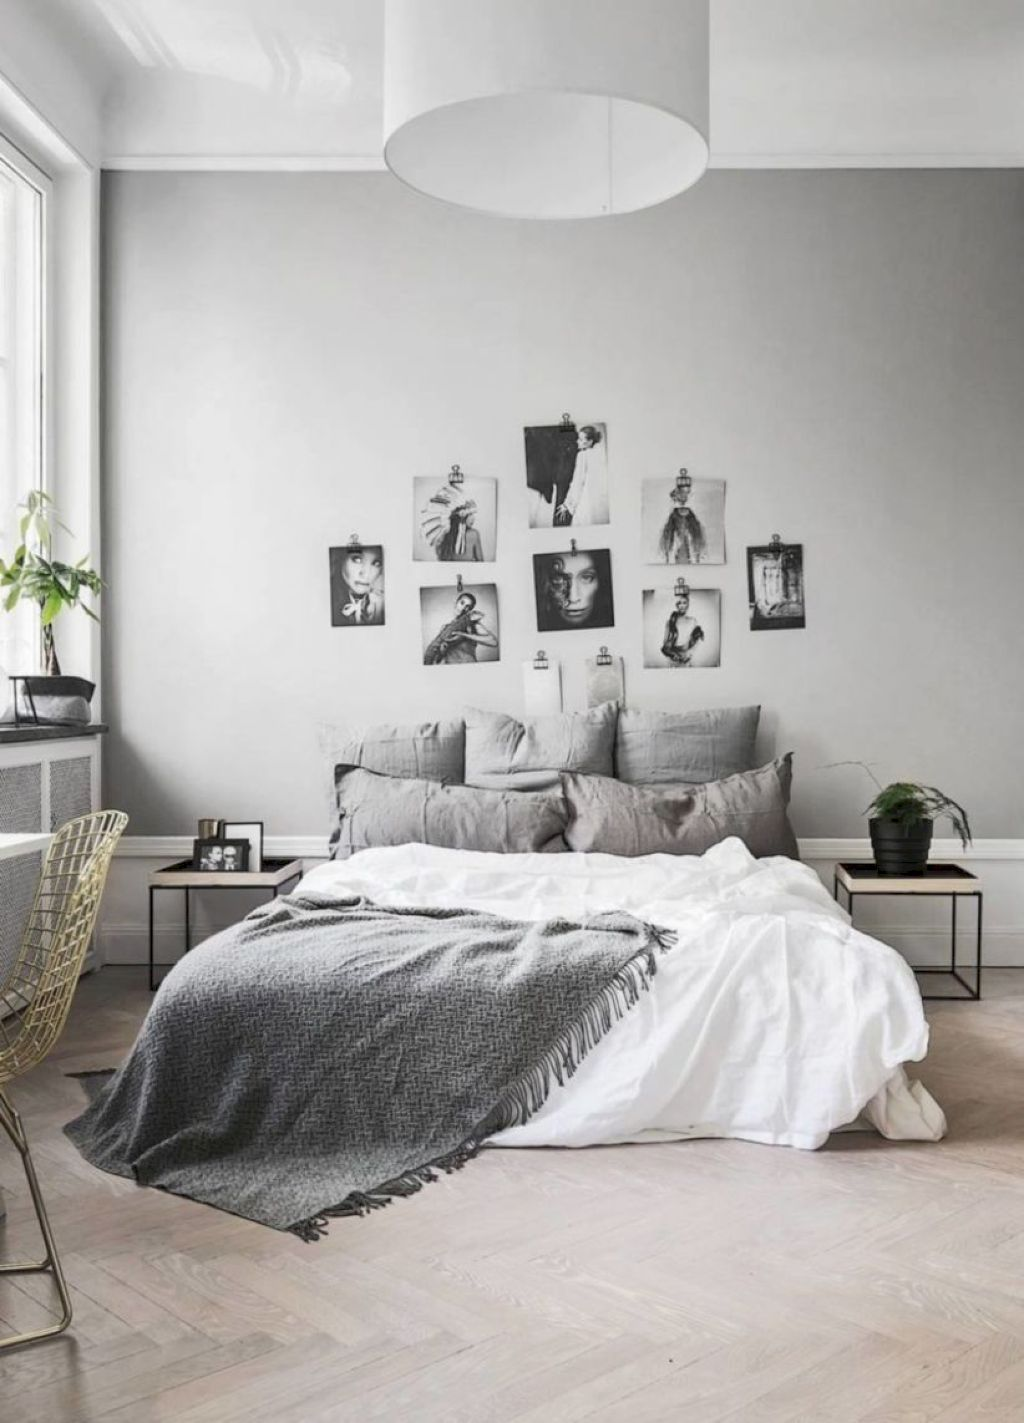 Awesome 91 Beautiful Comfy Bedroom Decorating Ideas Https://centeroom.co/91